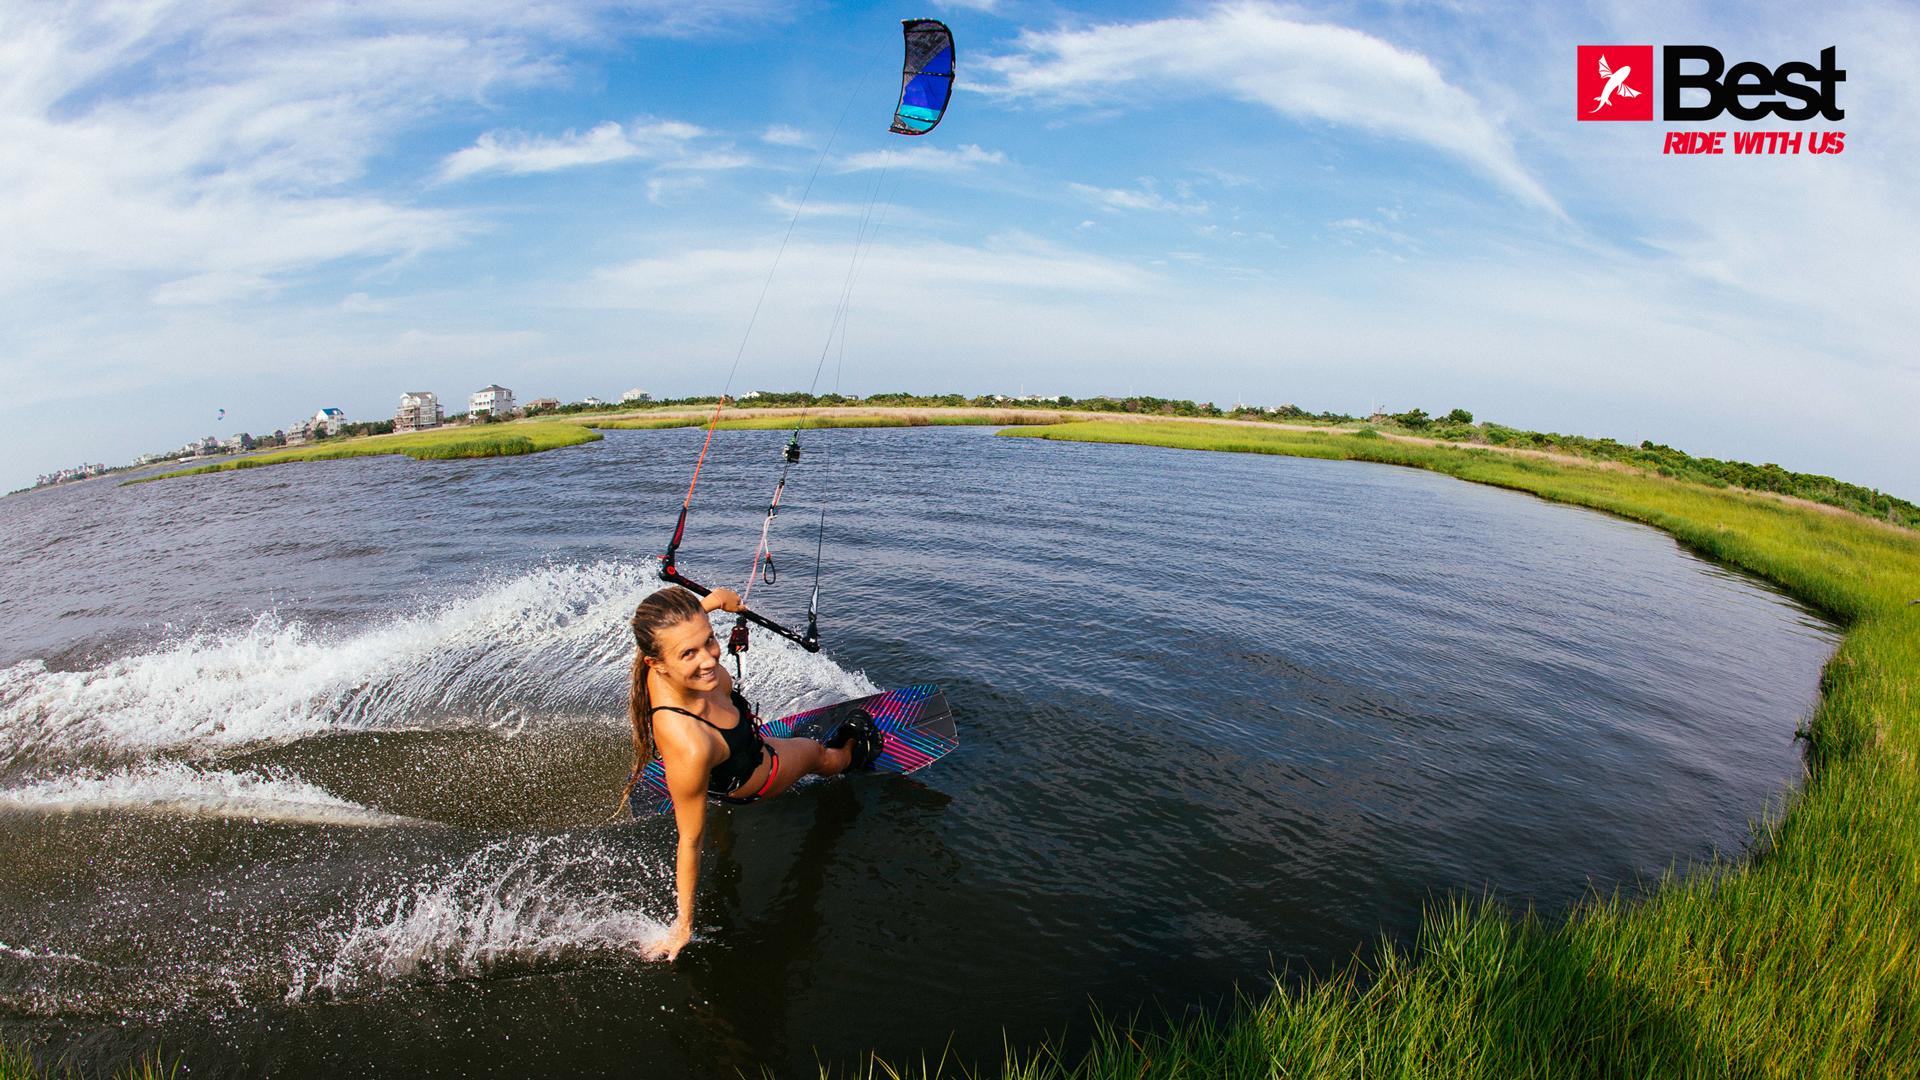 kitesurf wallpaper image - Cruising along the grass with the 2015 Best Kiteboarding TS kite - in resolution: High Definition - HD 16:9 1920 X 1080